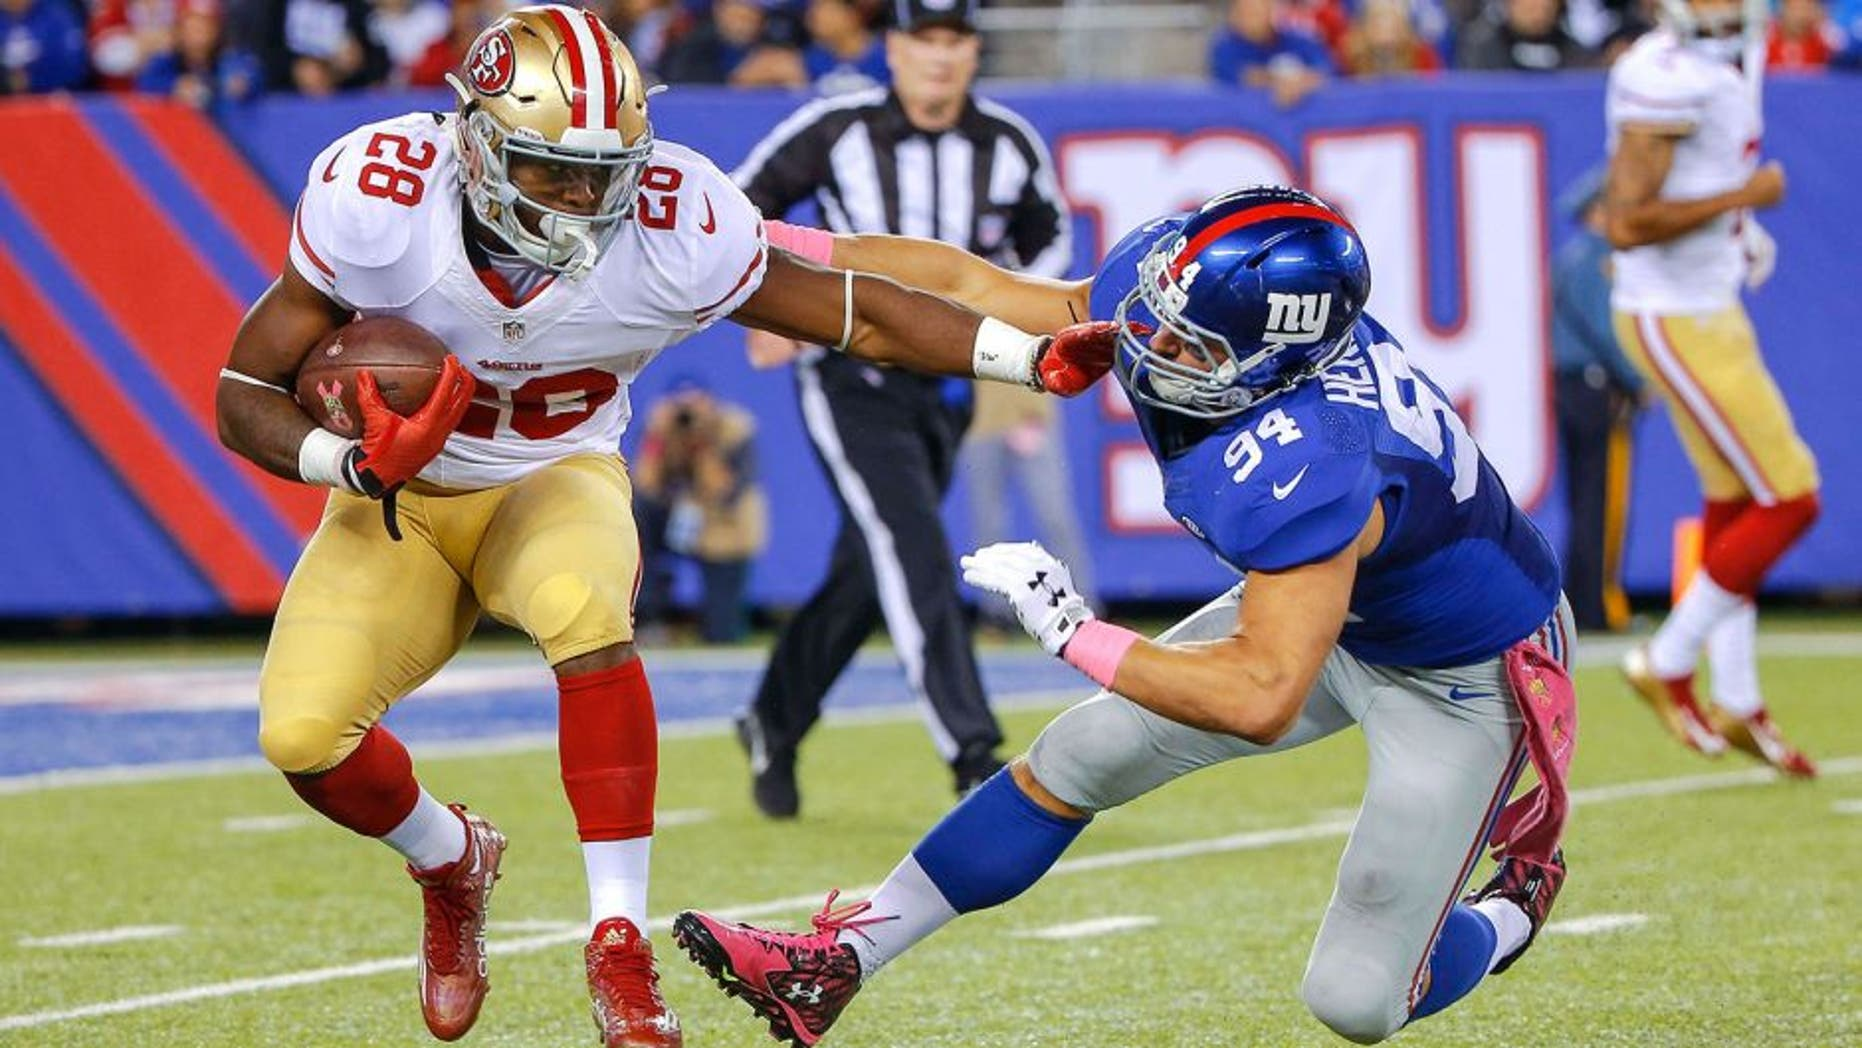 Oct 11, 2015; East Rutherford, NJ, USA; San Francisco 49ers running back Carlos Hyde (28) carries the ball as New York Giants outside linebacker Mark Herzlich (94) defends during the third quarter at MetLife Stadium. The Giants won 30-27. Mandatory Credit: Jim O'Connor-USA TODAY Sports